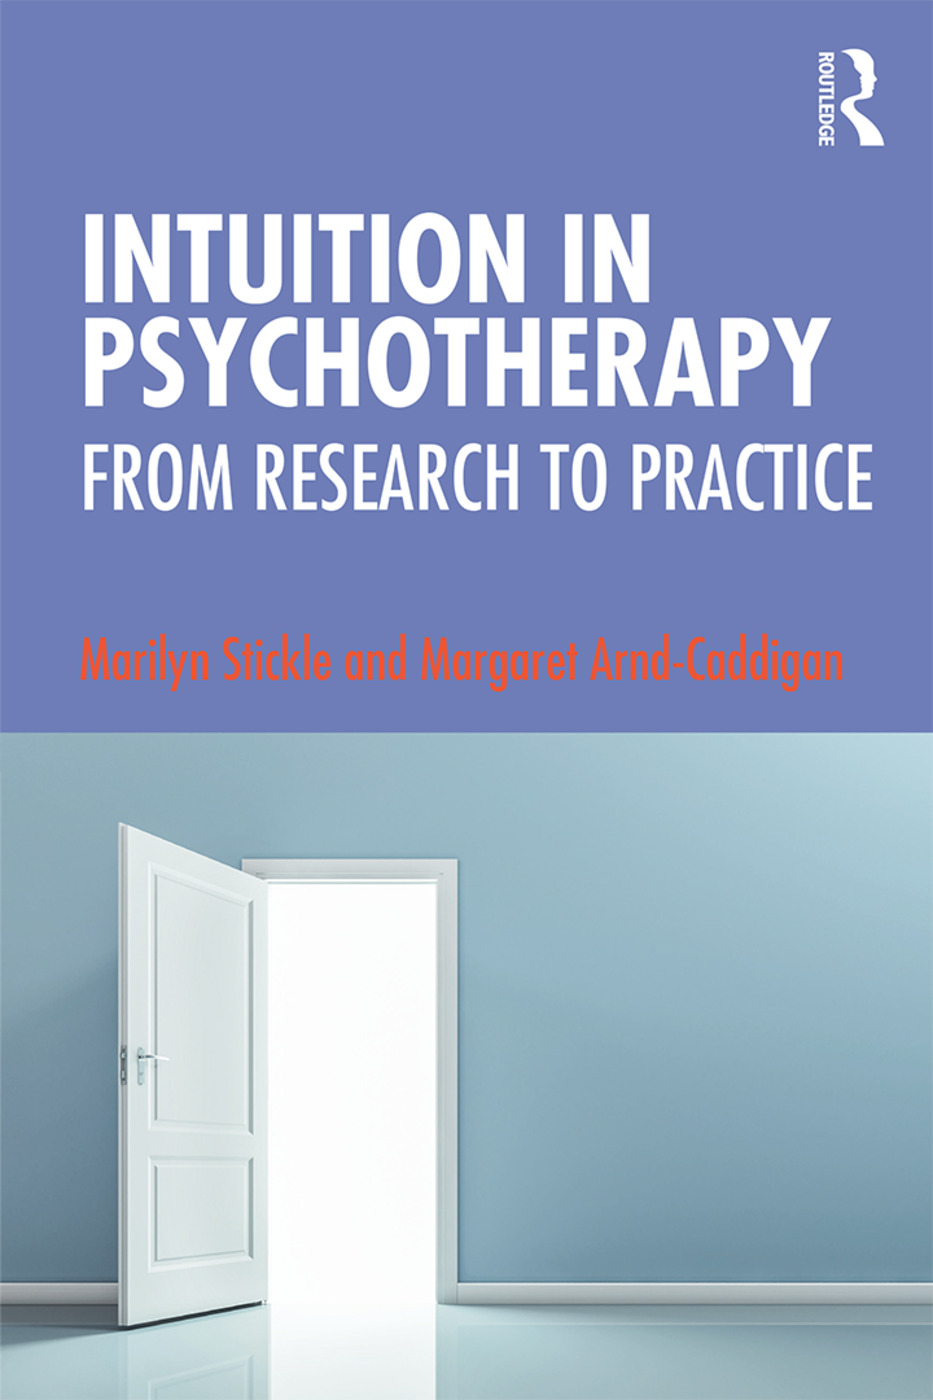 Therapists' Understanding of Their Intuition